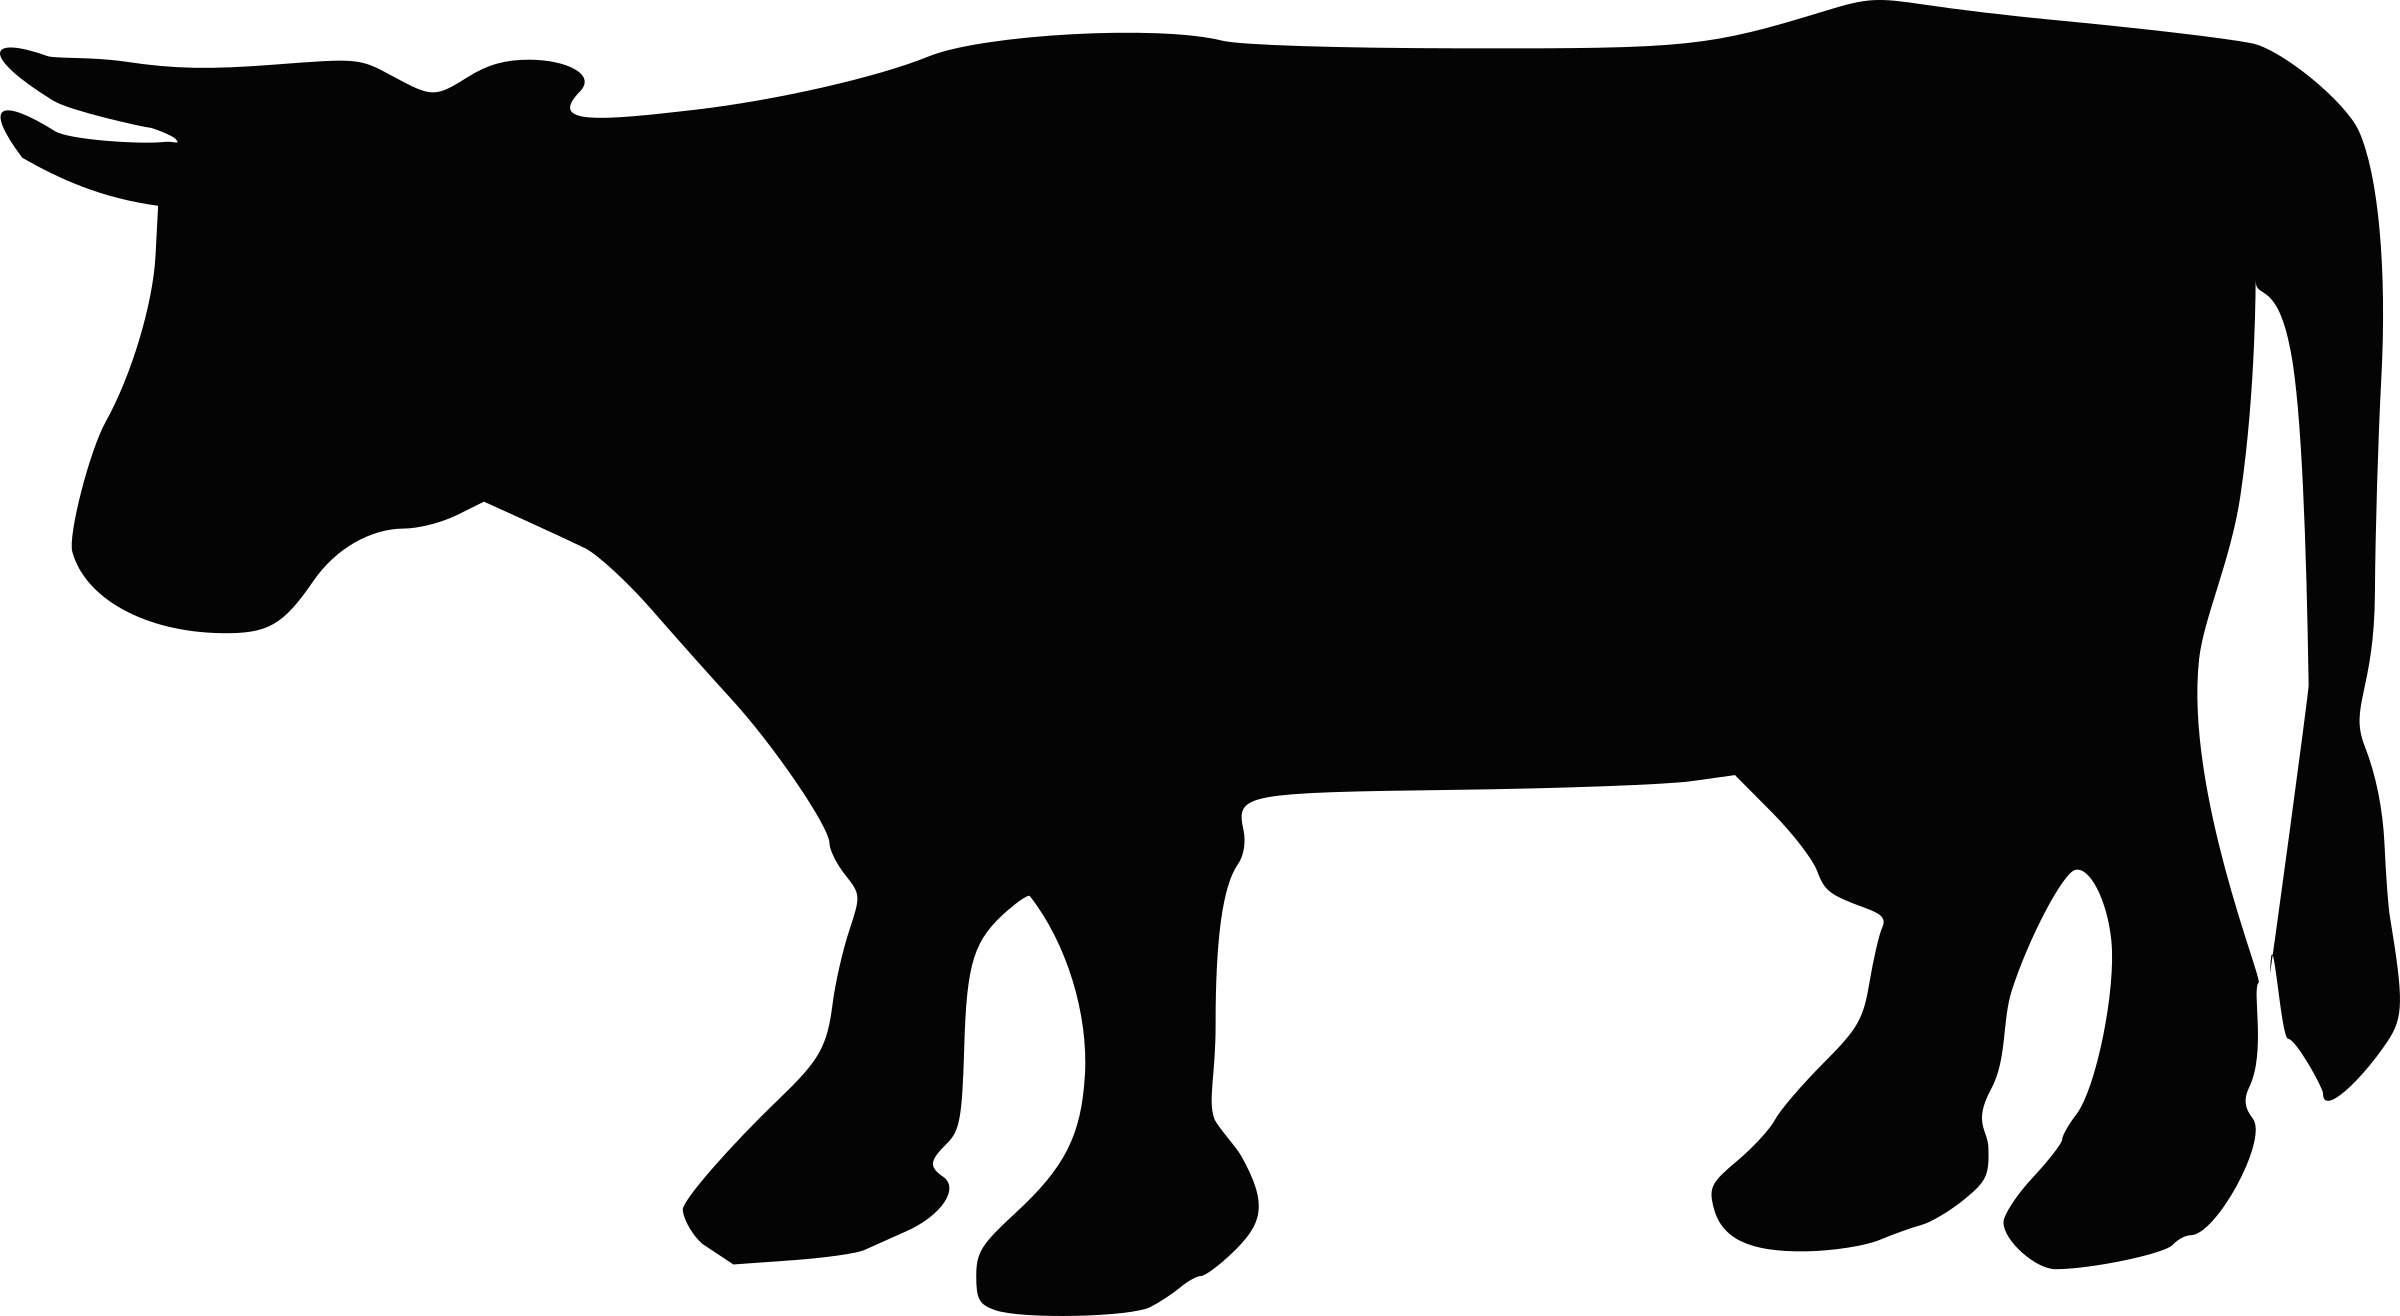 Cow Silhouette 2 by Boort